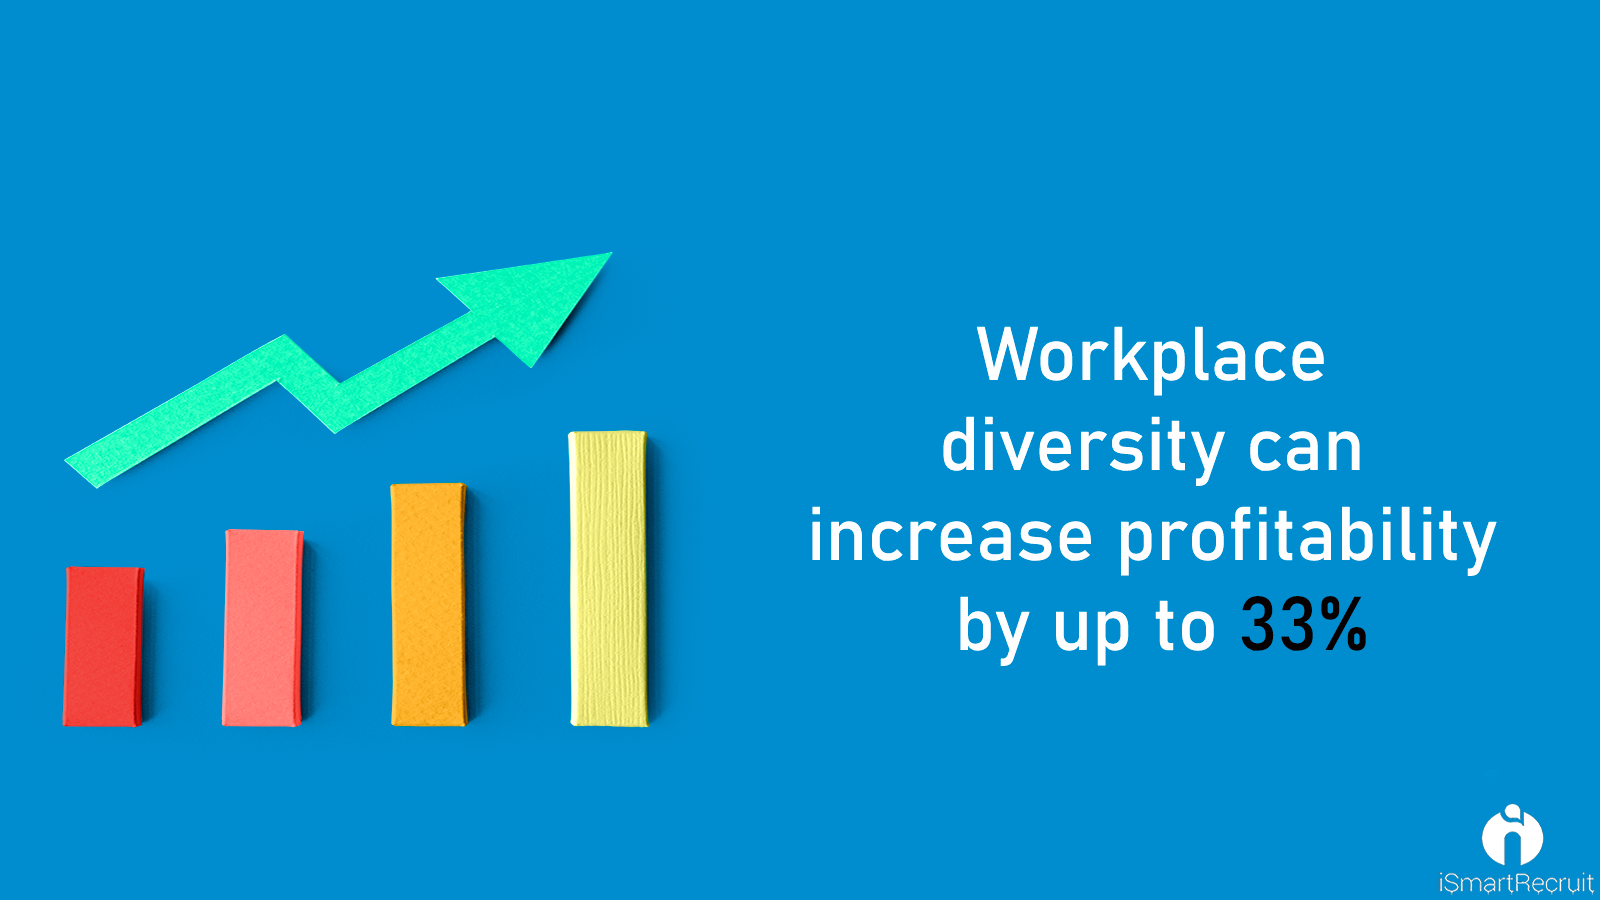 Workplace diversity increases the profit of the company